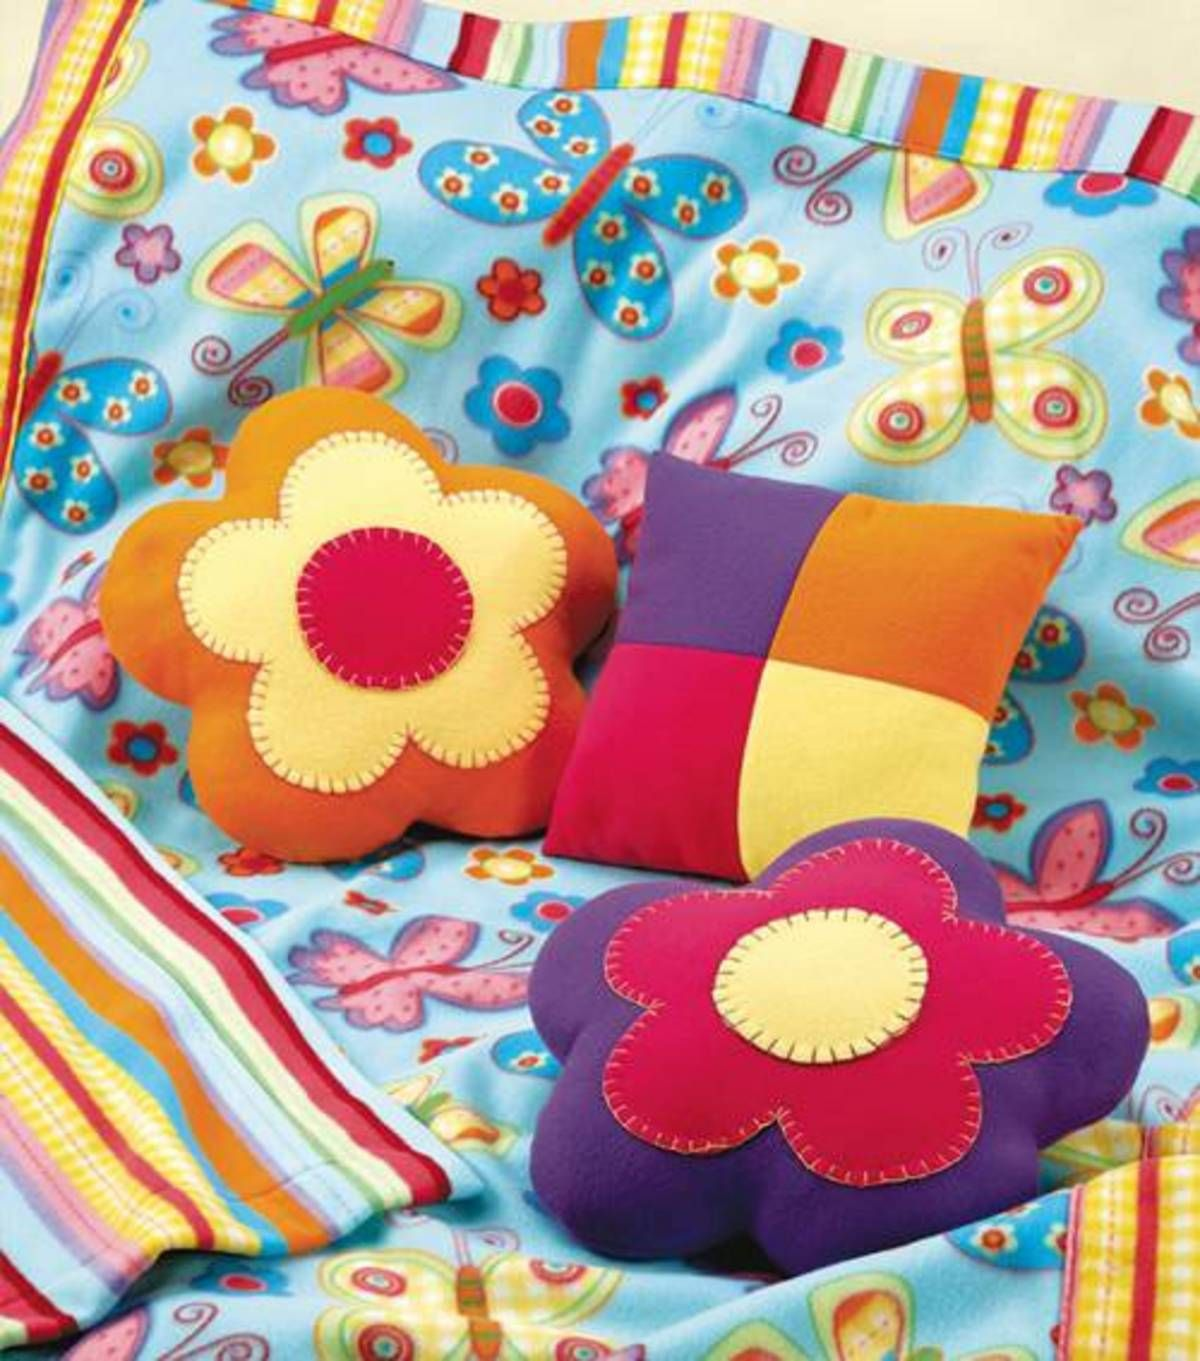 Diy fleece blanket and flower pillows instructions bedding and